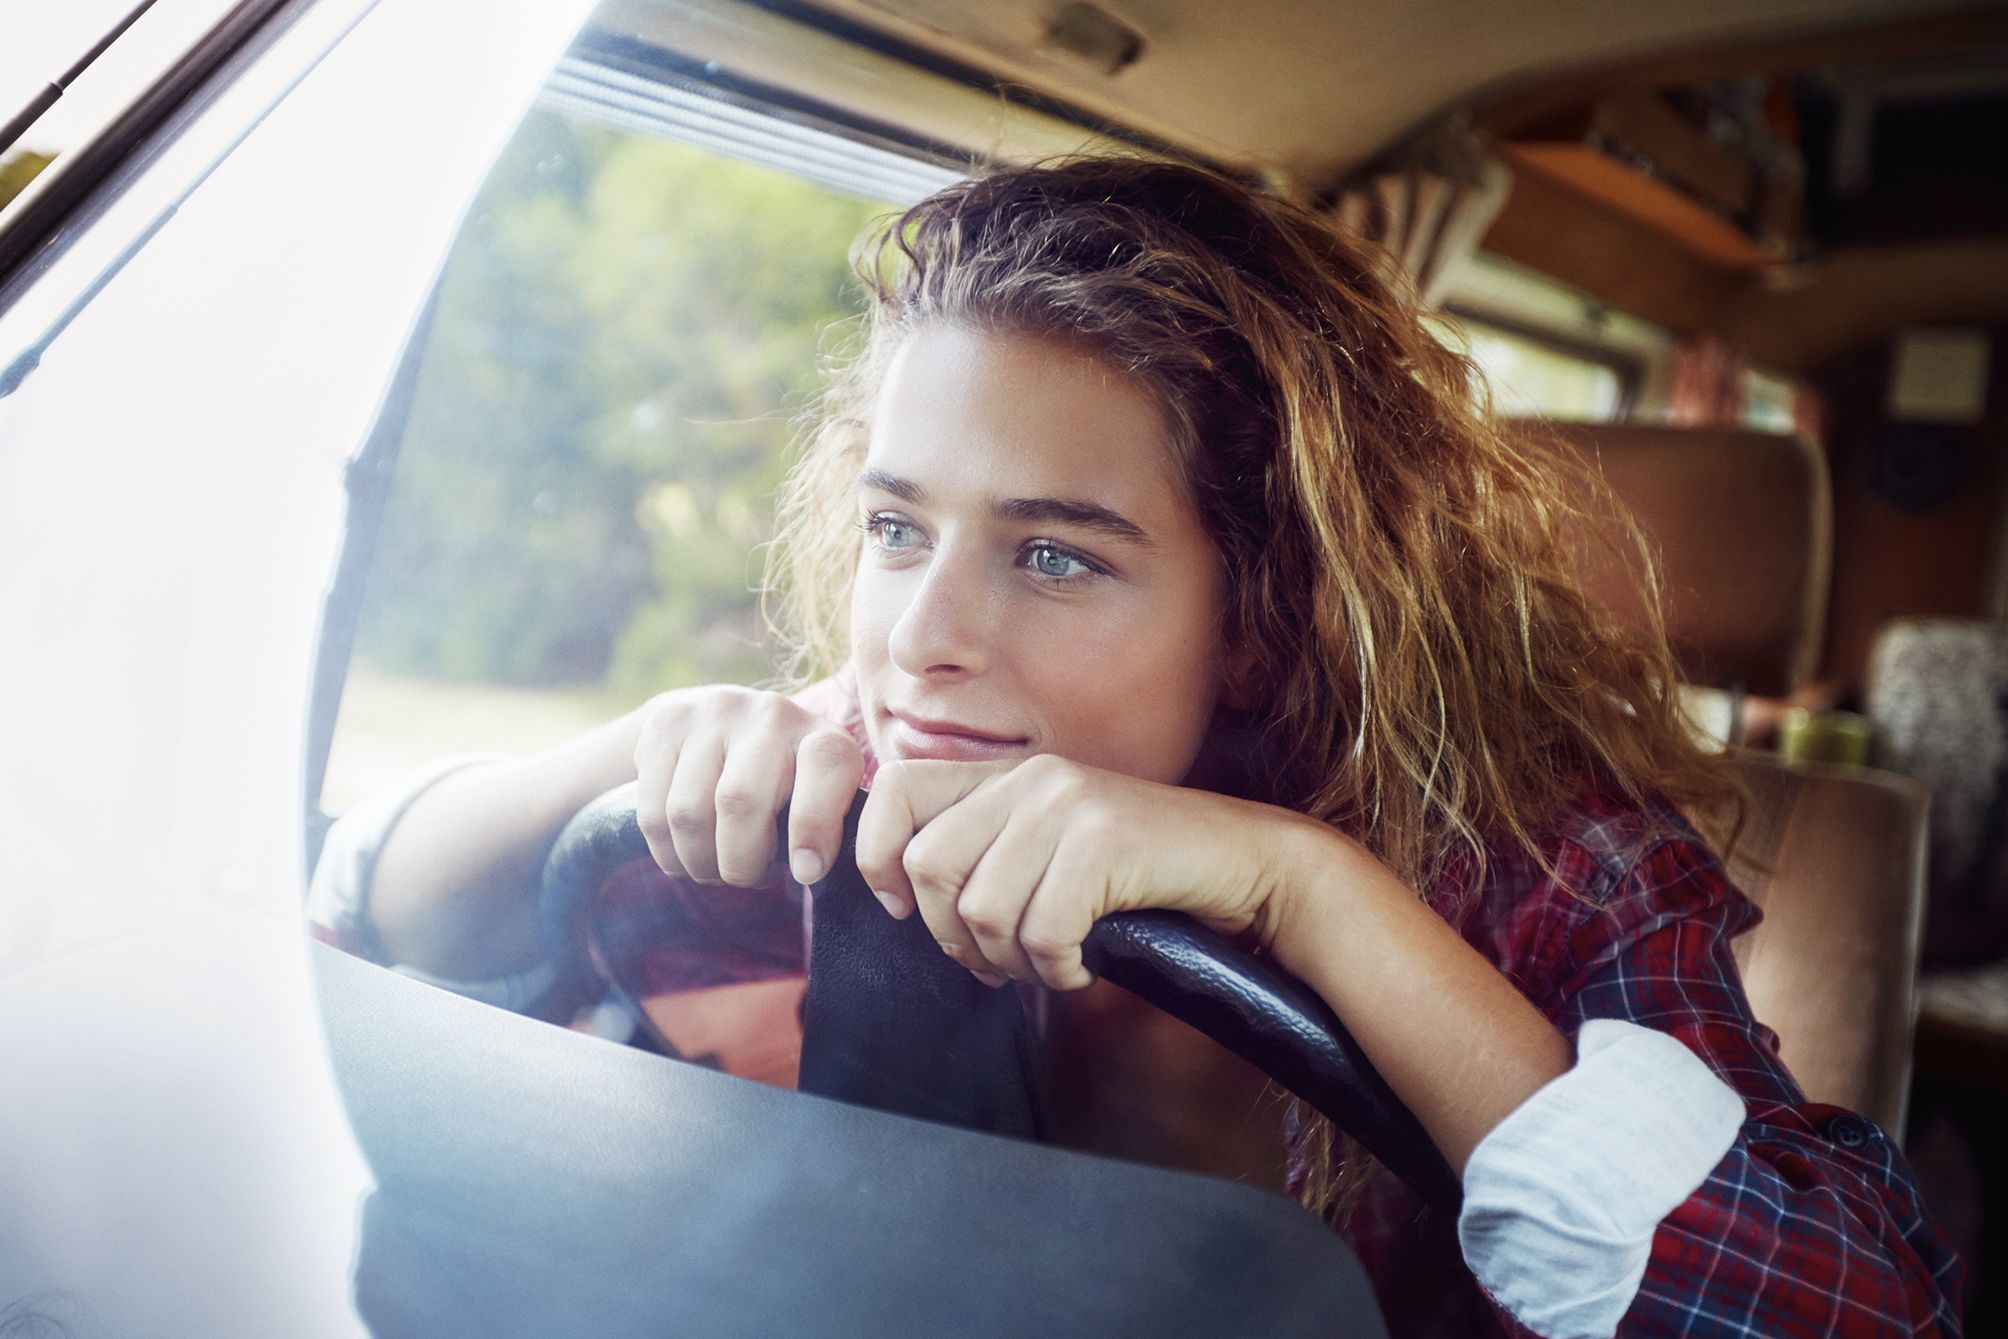 Young outdoor model sitting at the steering wheel of her vw camper van, gazing thoughtfully out of the window.